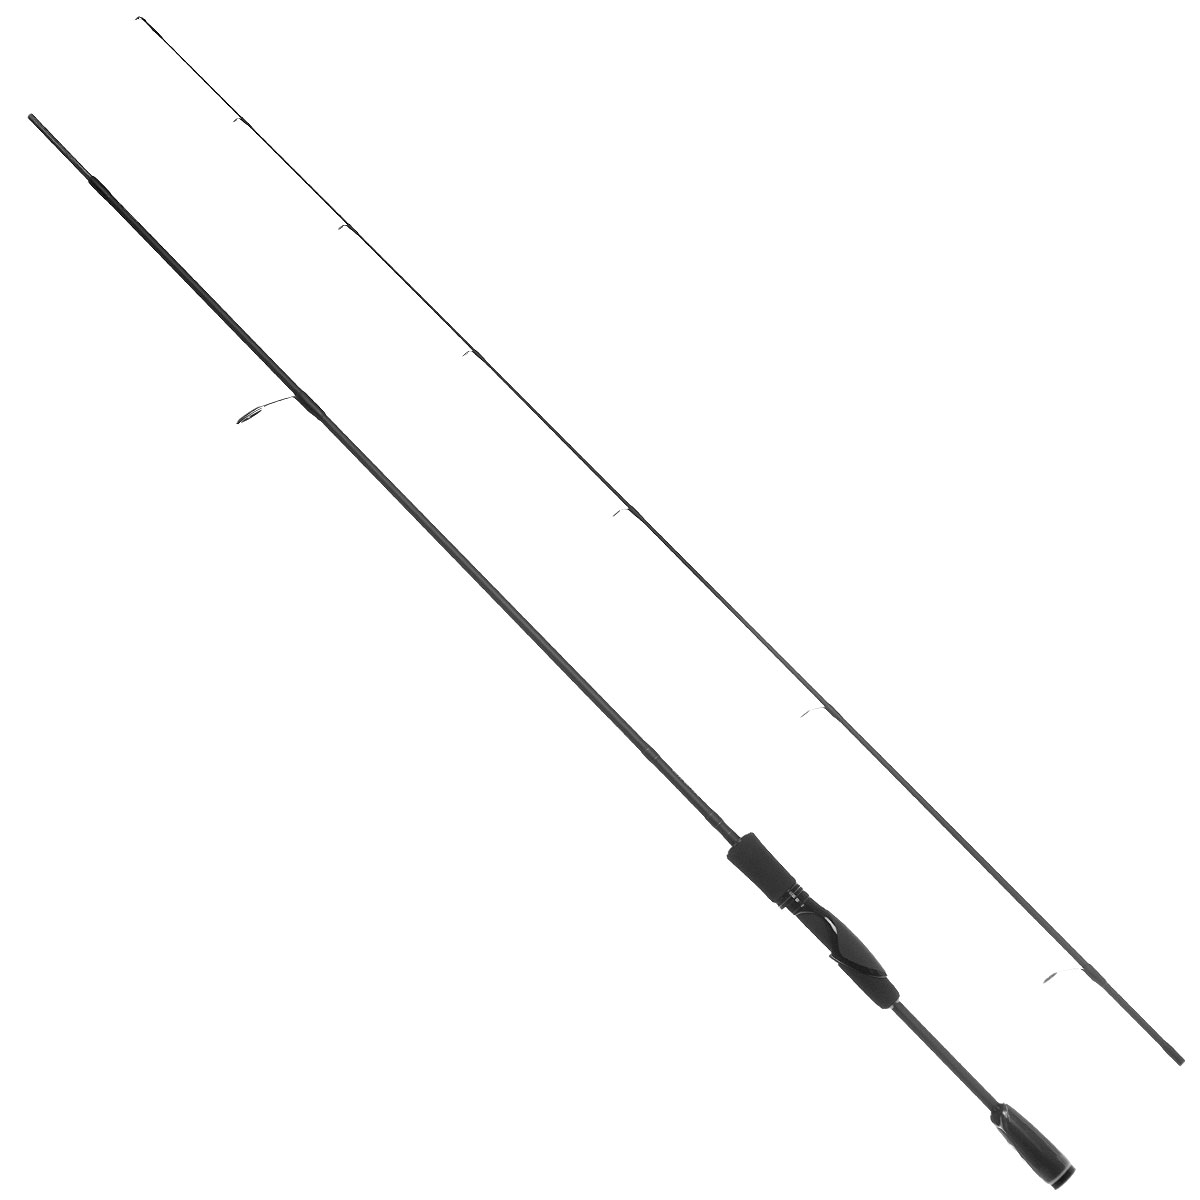 Спиннинг штекерный Daiwa Generation Black Small Plugger, 2,25 м, 5-12 г гамак helios yjdc 07 280x100cm